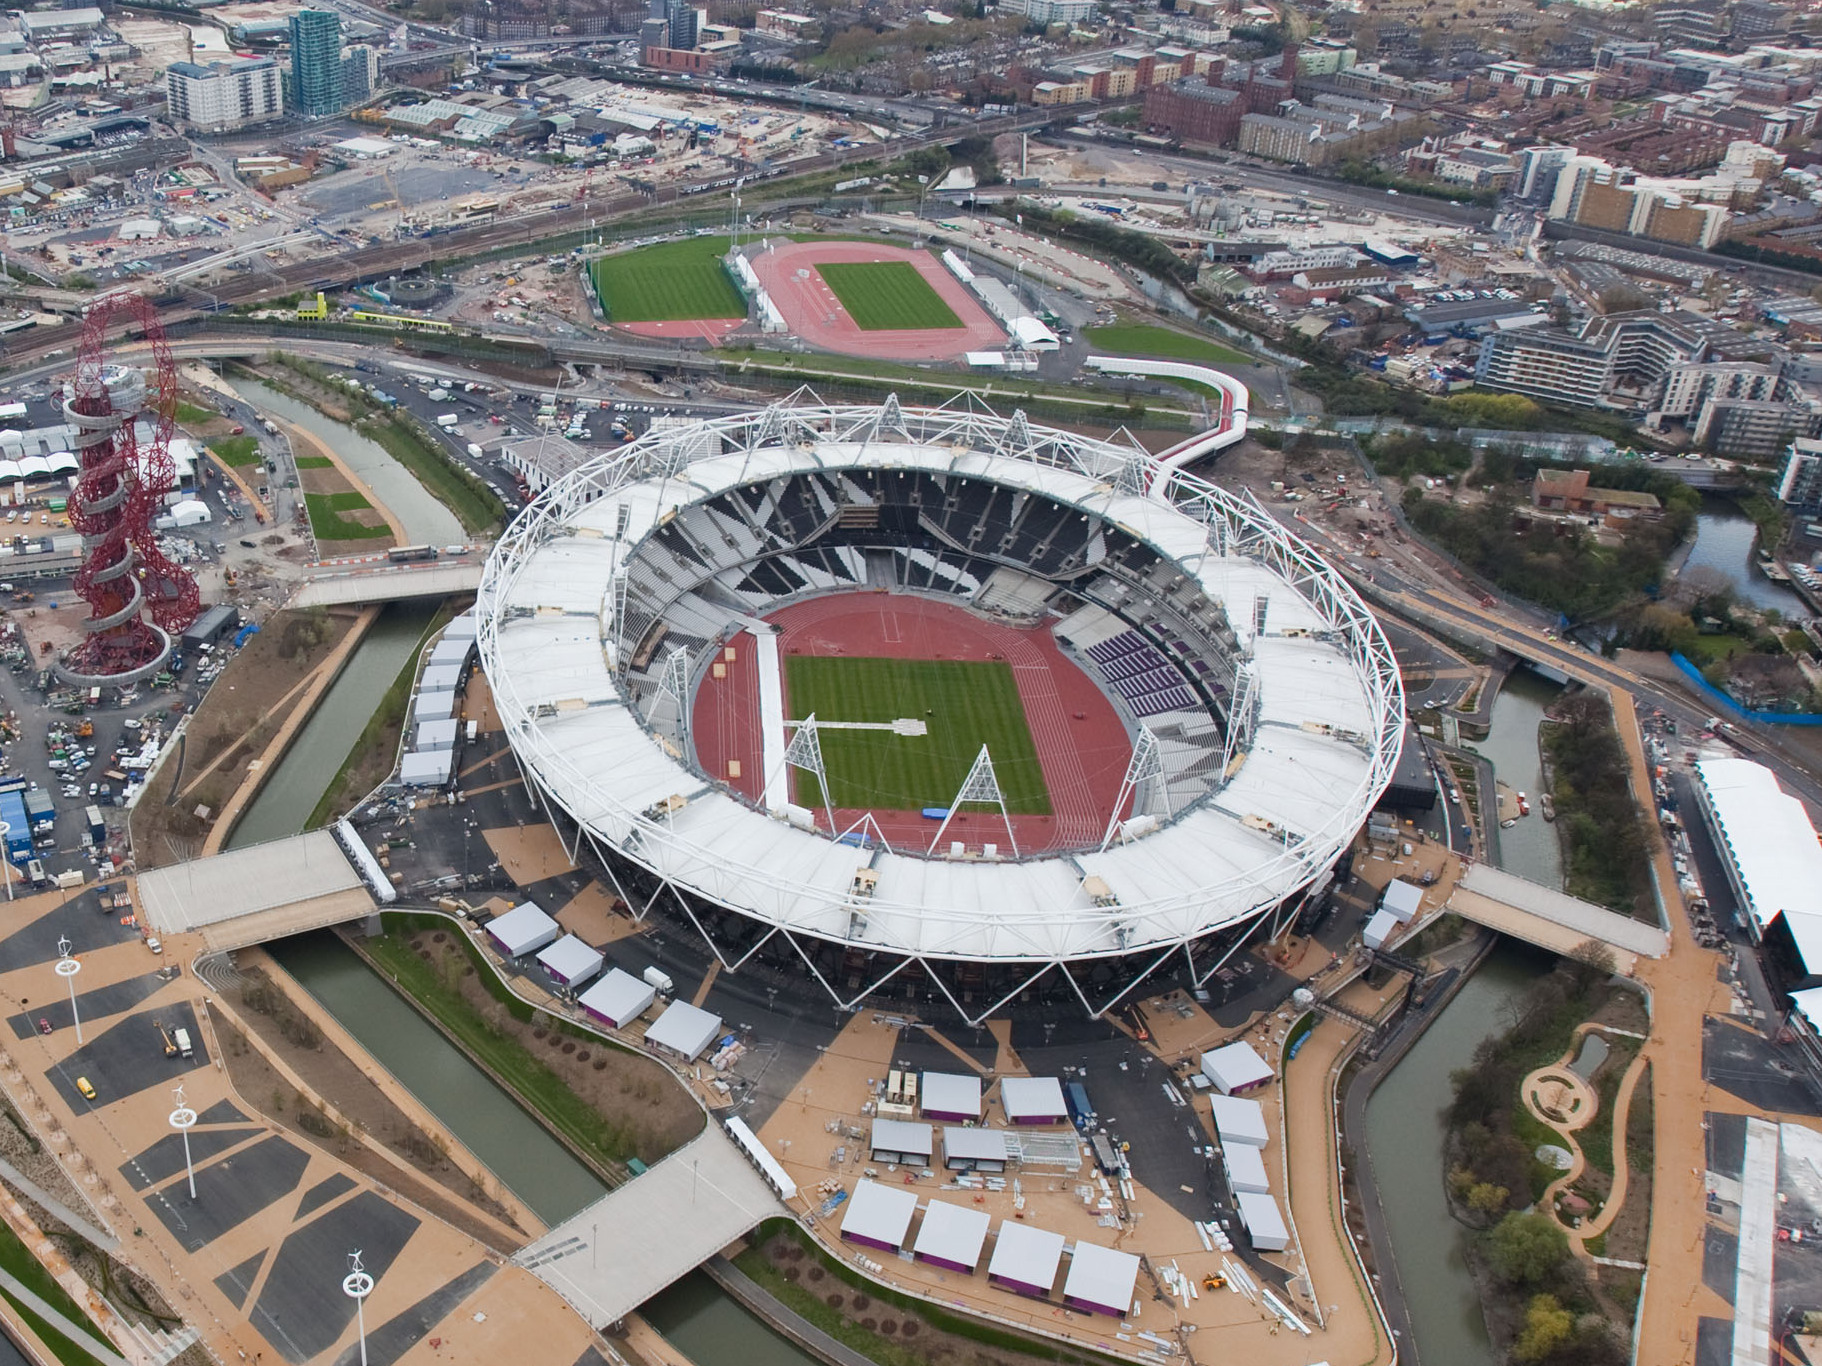 Aerial Shot of the London Olympic Stadium